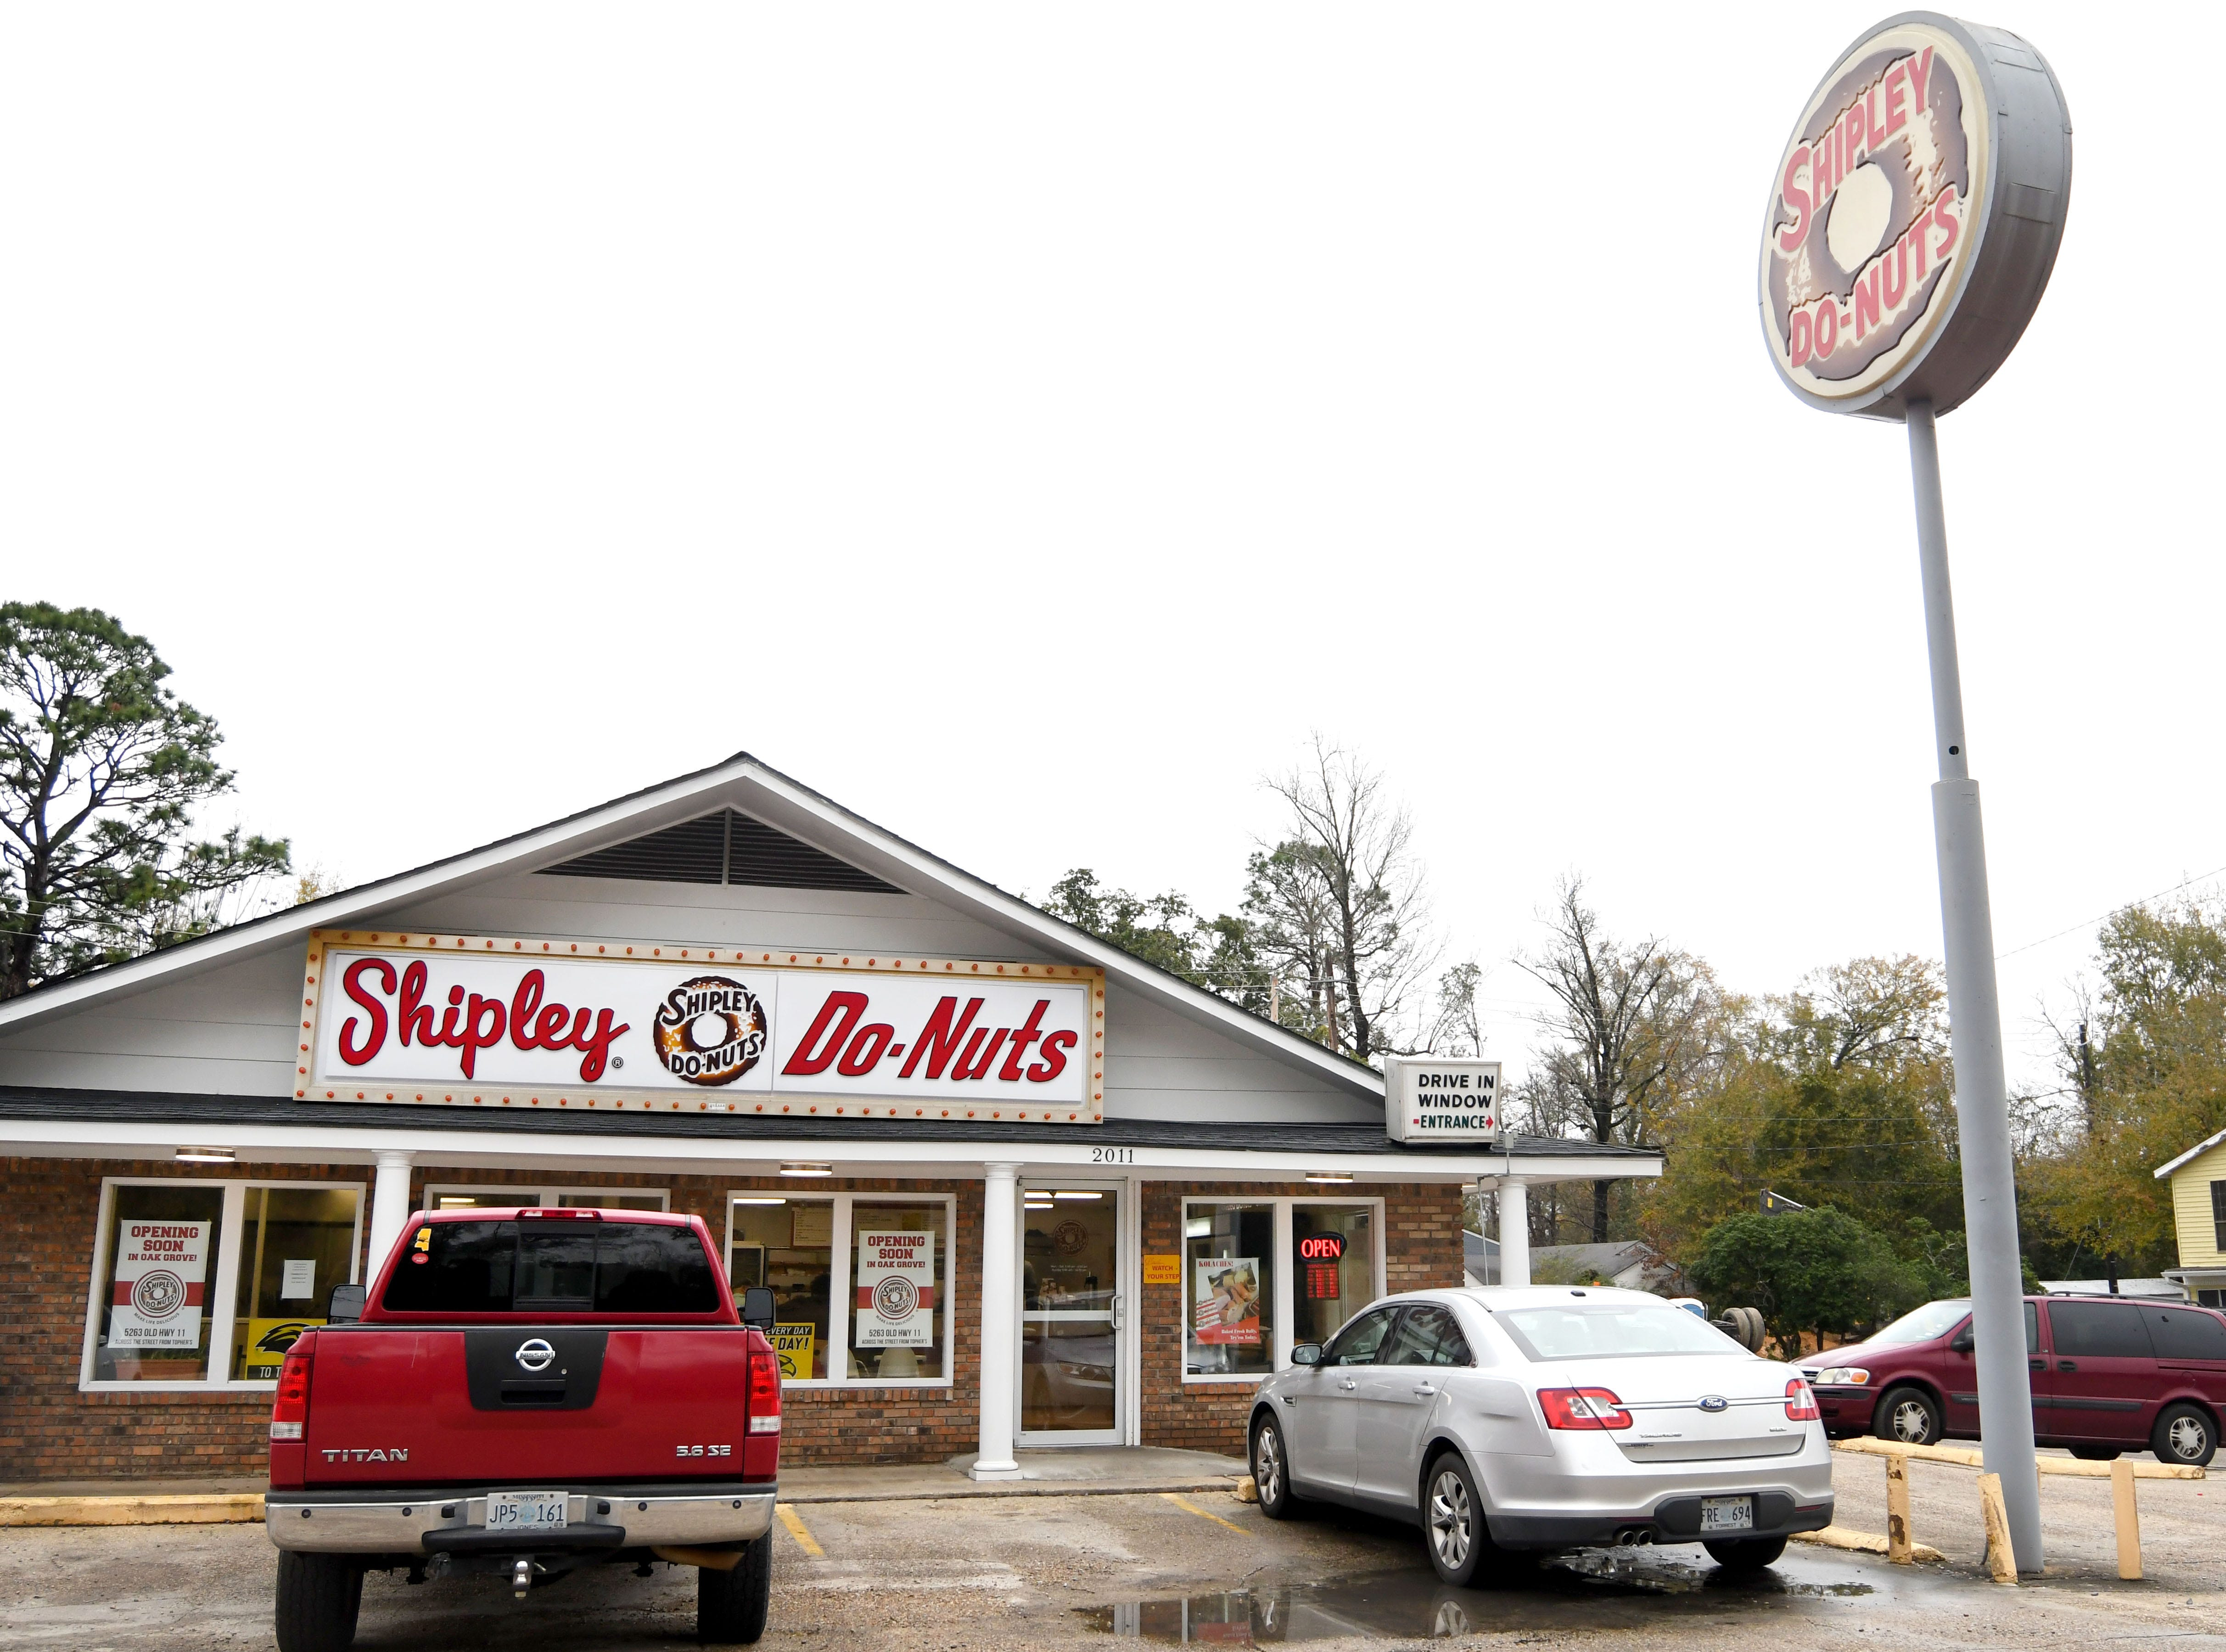 Shipley's Do-nuts will be opening a second location in West Hattiesburg in the spring.